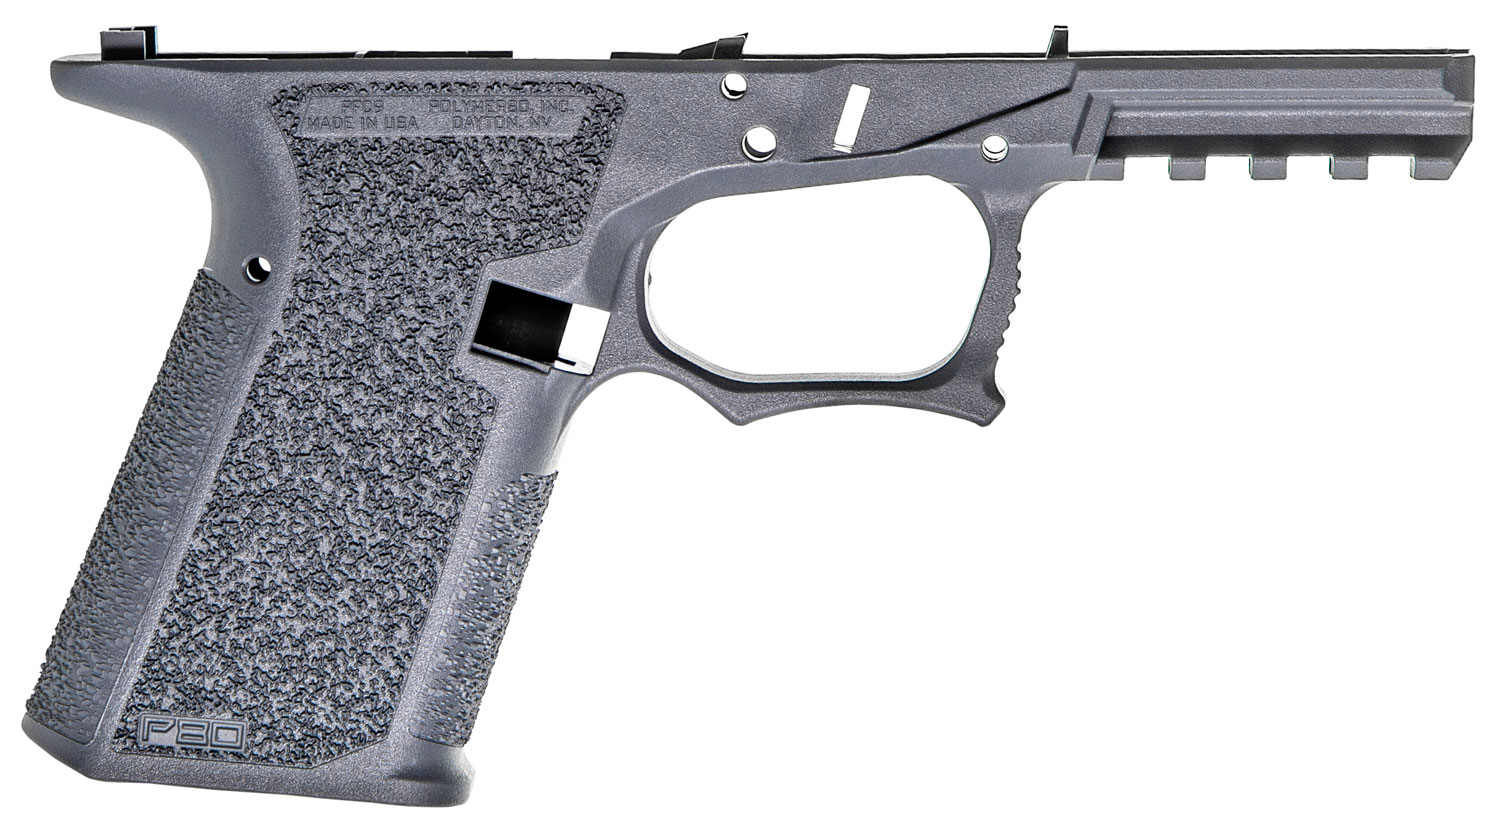 Polymer80 P80PFC9GRY G19/23 Gen3 Compatible 80% Pistol Frame Polymer Gray Serialized